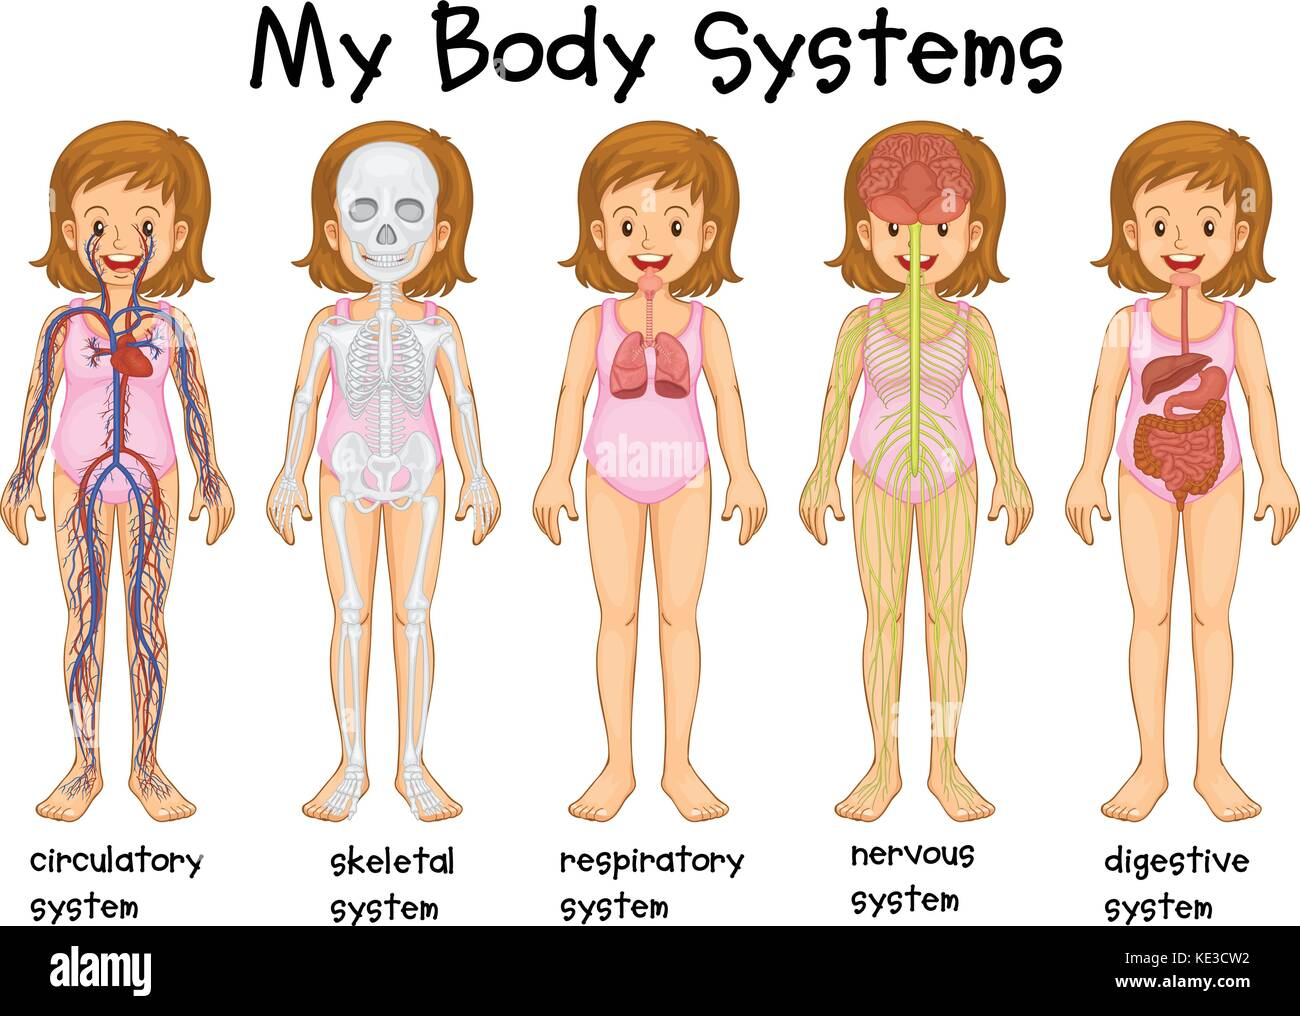 Different body systems in human illustration